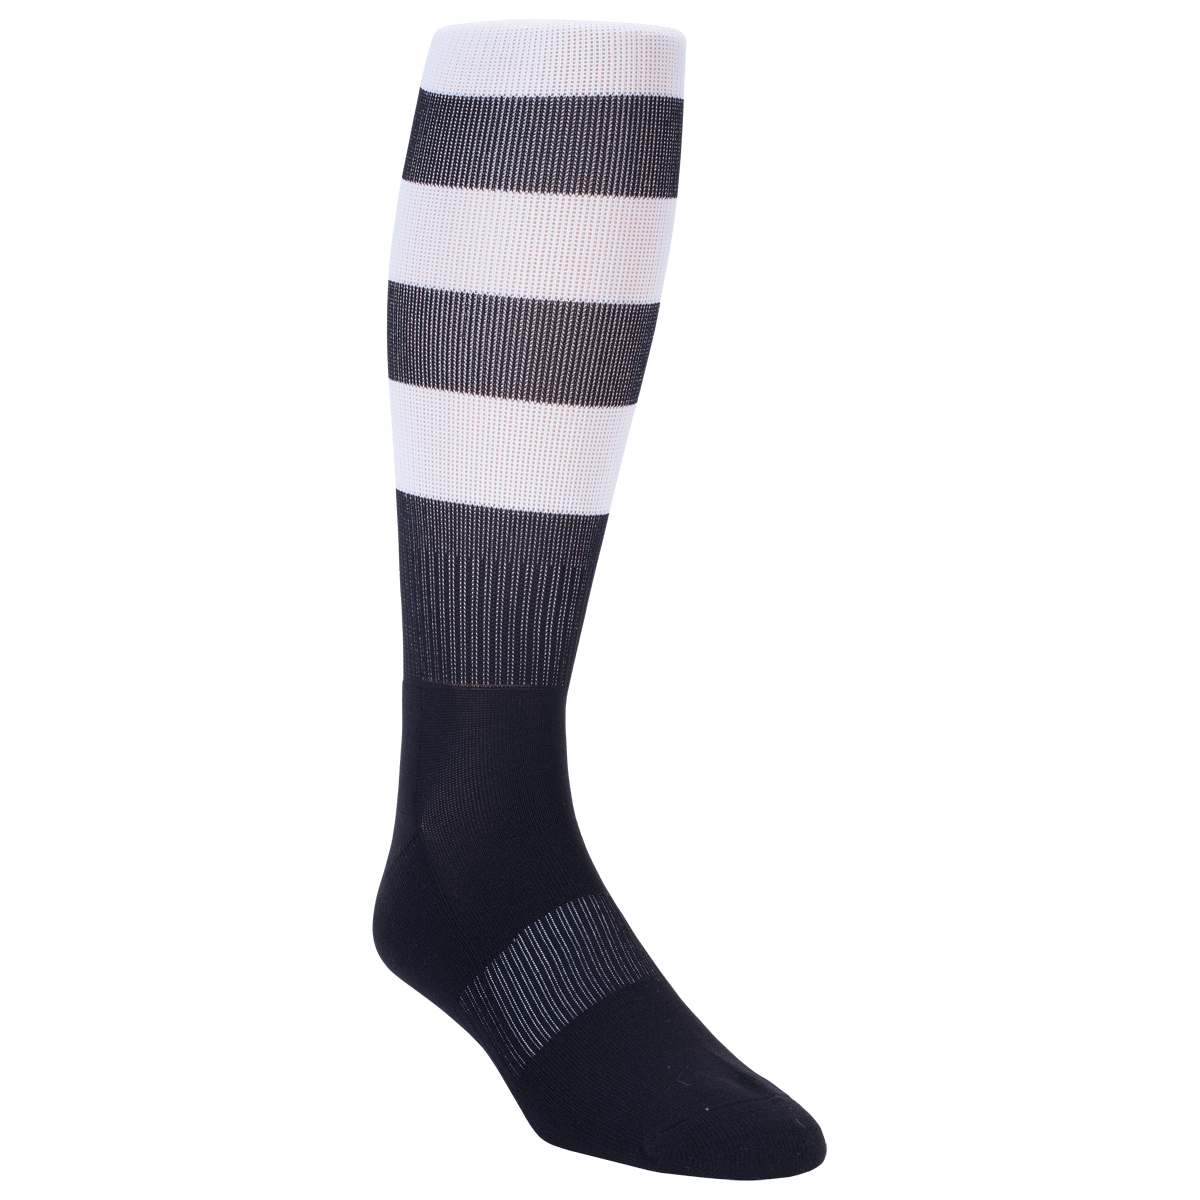 Elite Black/White Hooped Rugby Socks